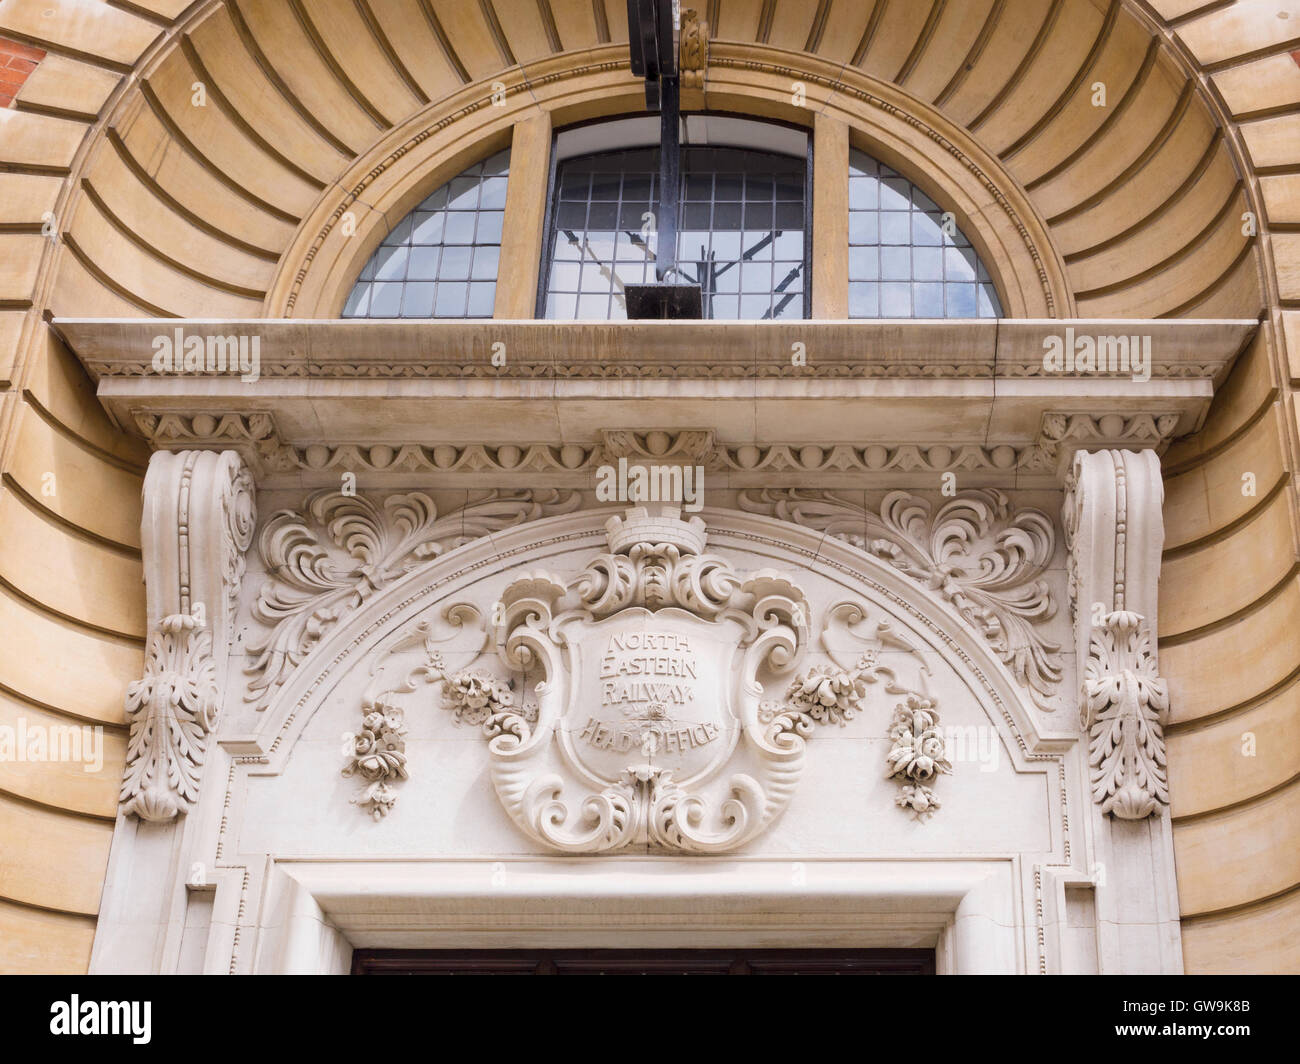 Entrance detail of former headquarters offices (1906) of the North Eastern Railway in York, England, designed by - Stock Image